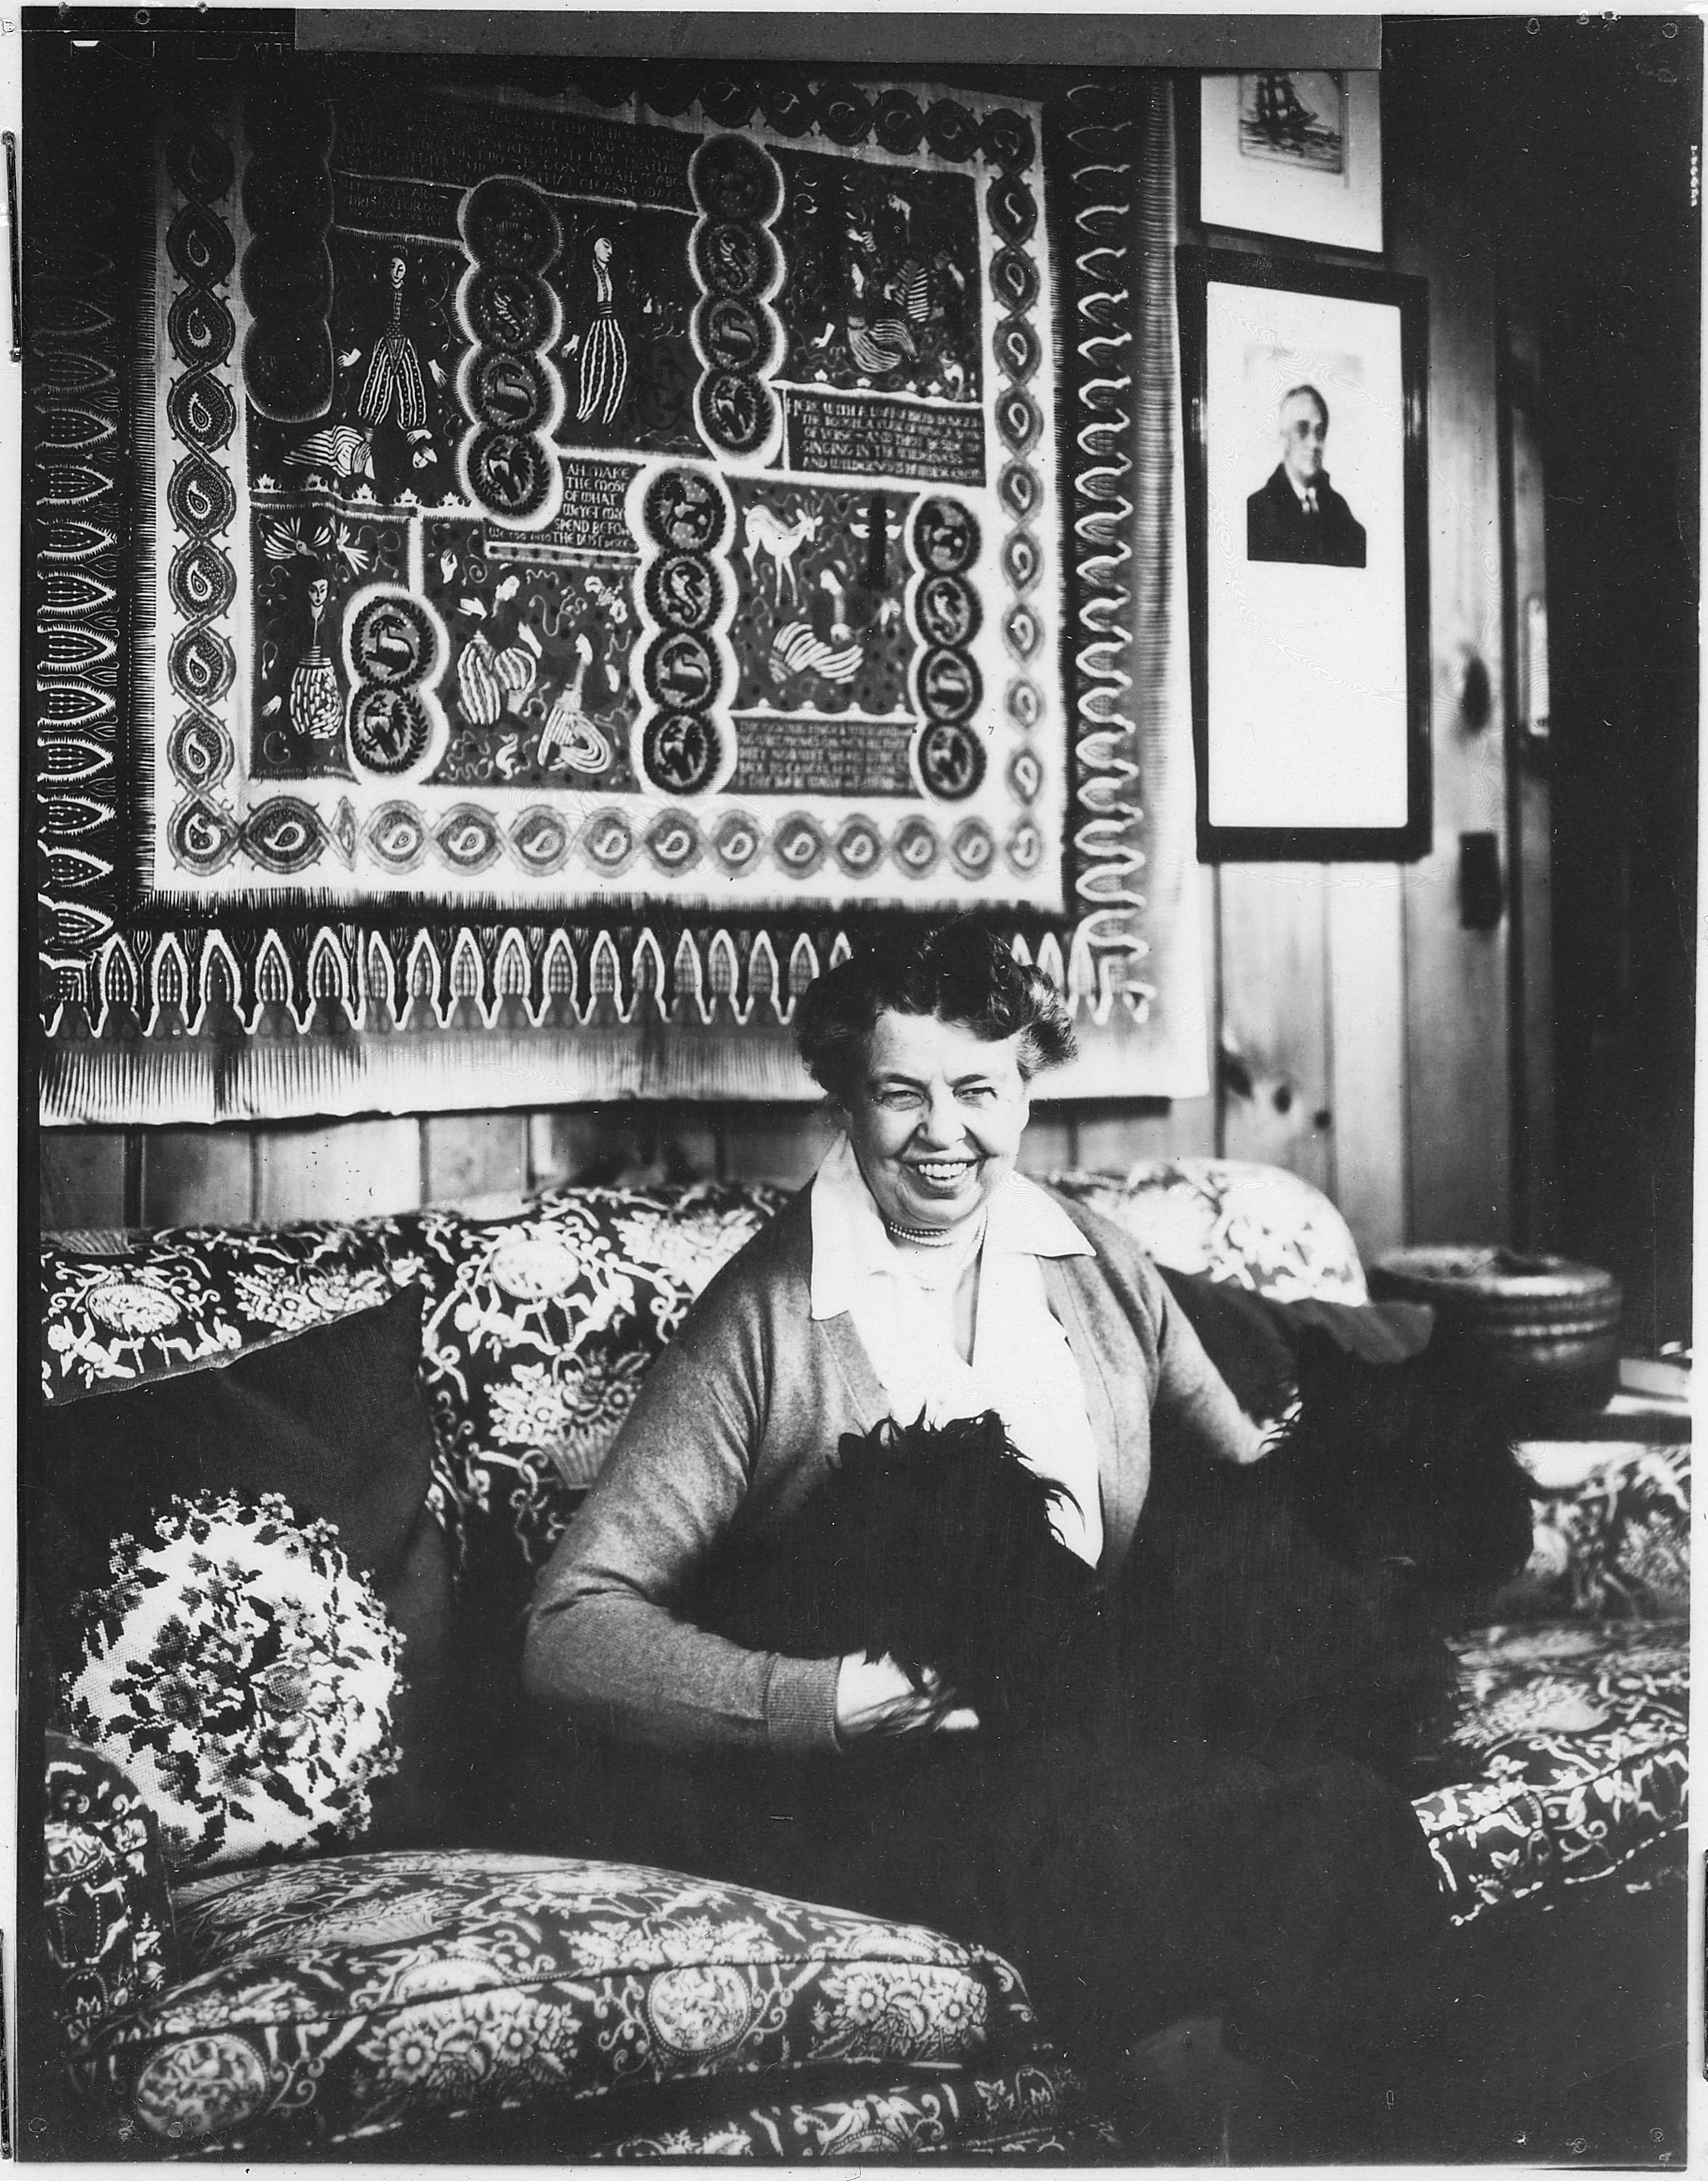 Eleanor Roosevelt posing with her two Scotties, Tamas and Fala, at Val-Kill in 1949